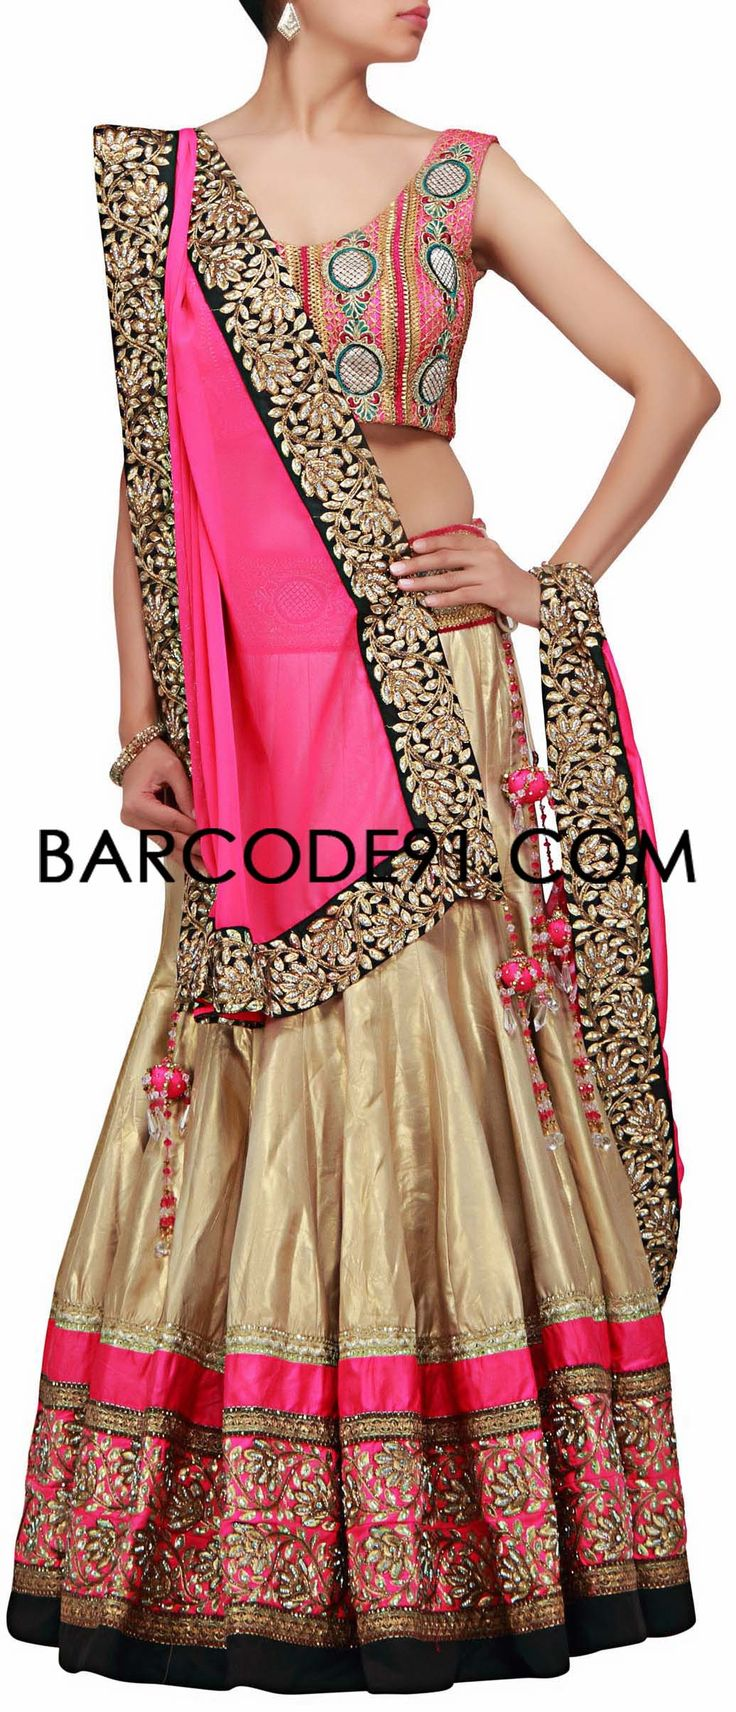 Buy it now http://www.barcode91.com/a-beiger-and-pink-lehenga-choli-with-gotta-patti-work-by-kalki.html A beiger and pink lehenga choli with gotta patti work by Kalki